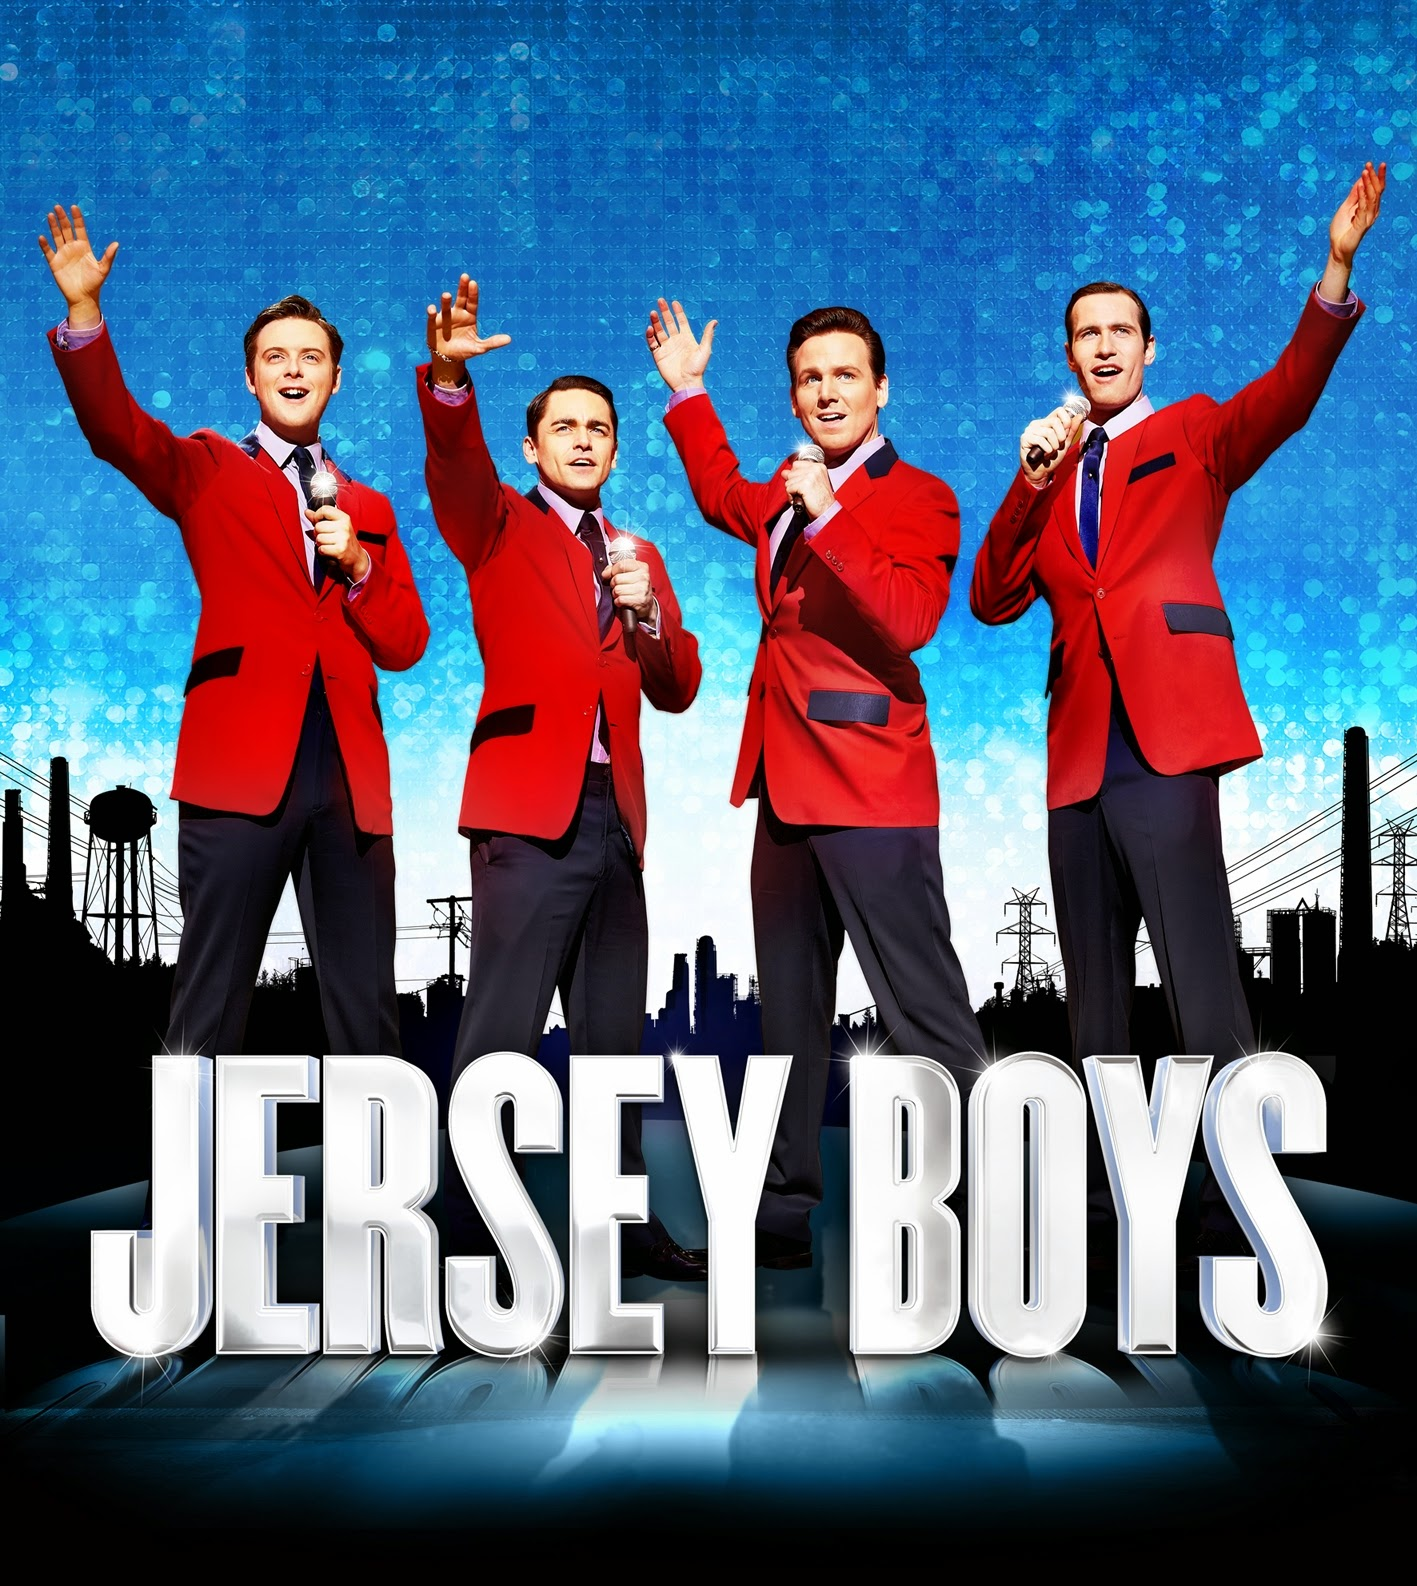 jersey boys 2014 ending a relationship